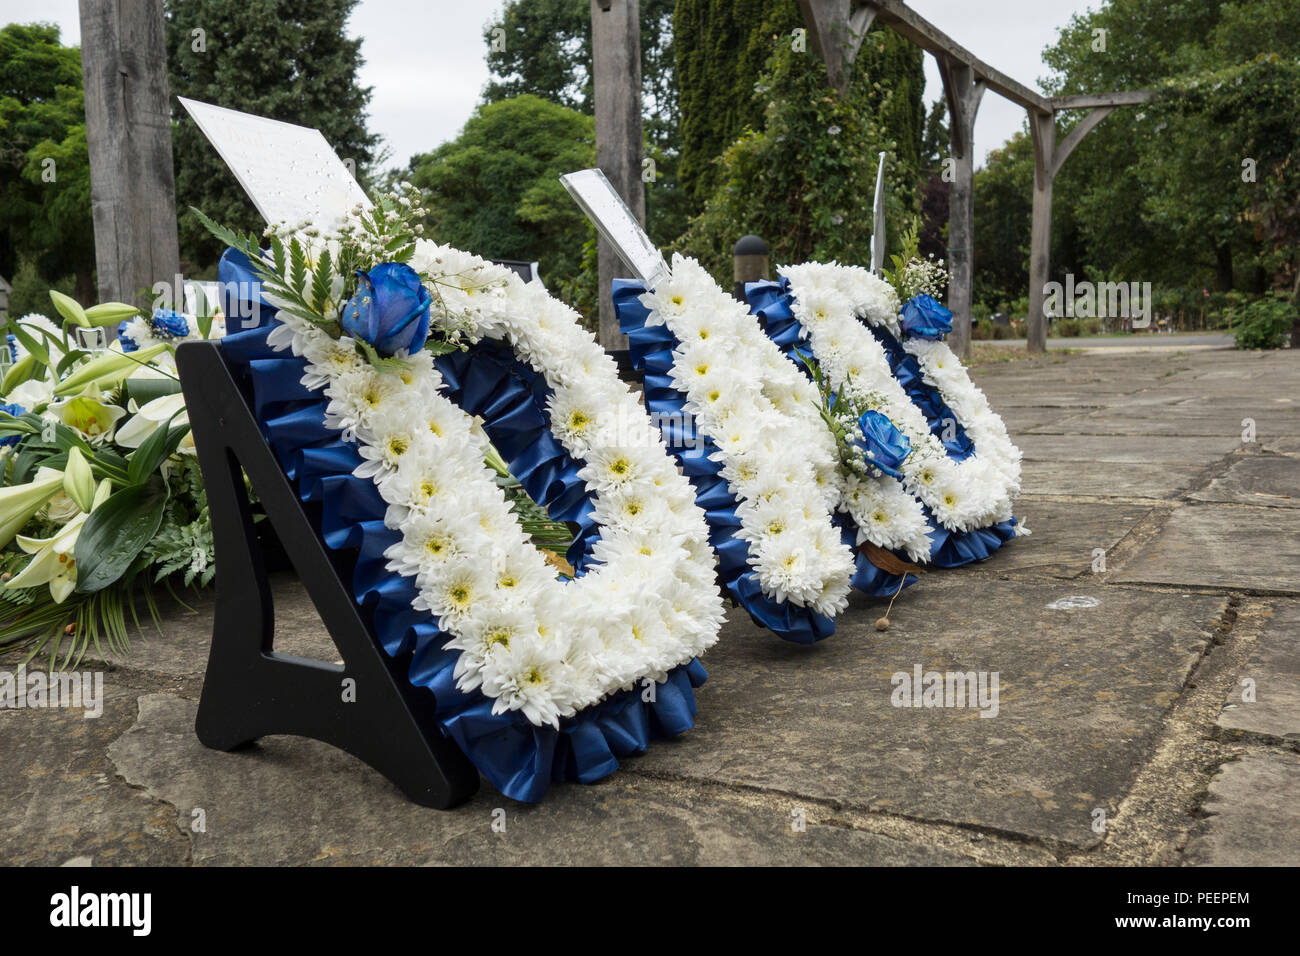 Funeral wreath dad stock photos funeral wreath dad stock images dad funeral tribute wreath outside a crematoria in london uk stock image izmirmasajfo